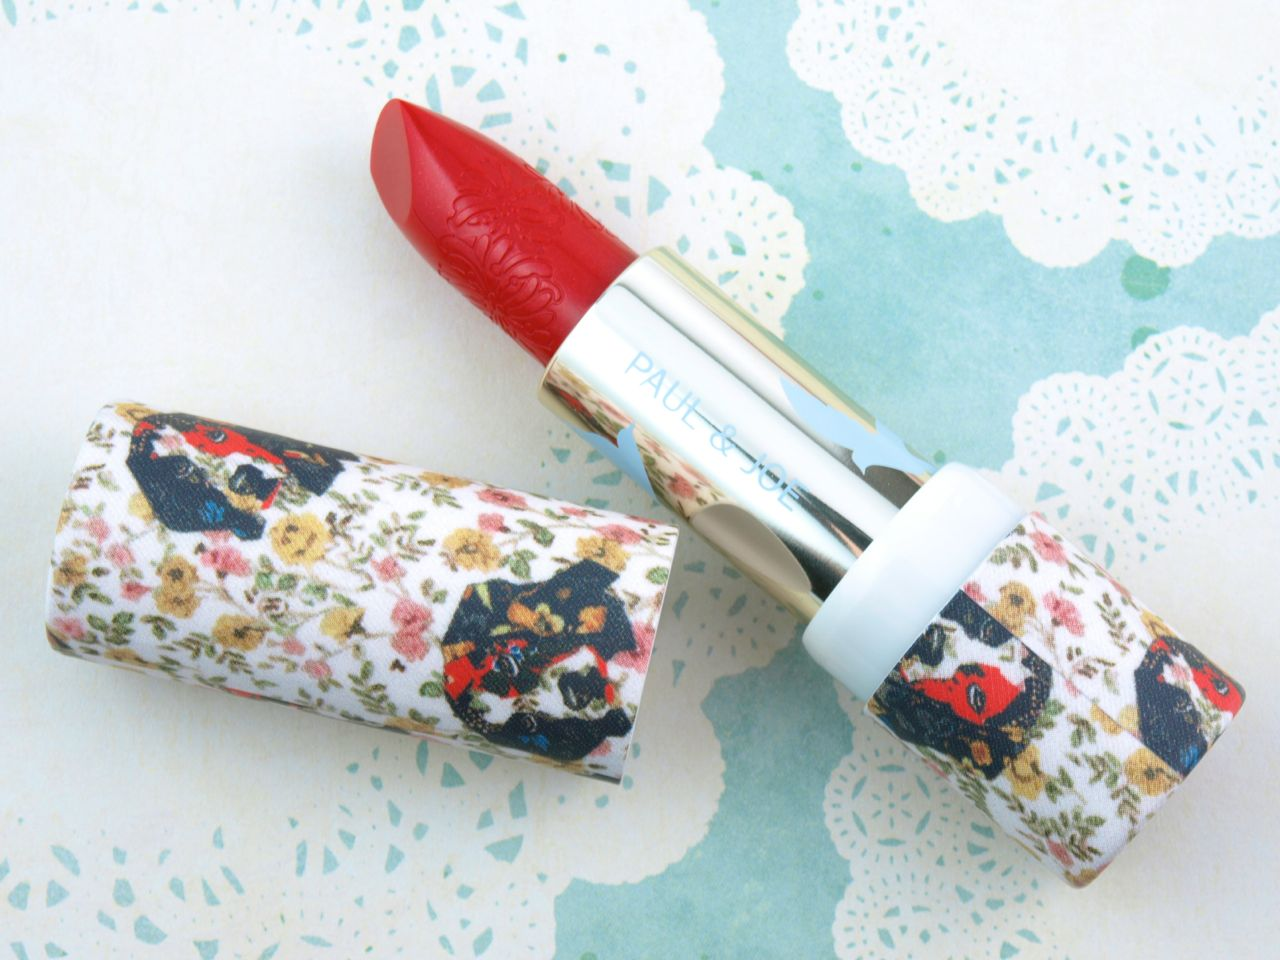 Paul & Joe Sparkles Collection Lipstick Case 019 & Lipstick Refill 086: Review and Swatches